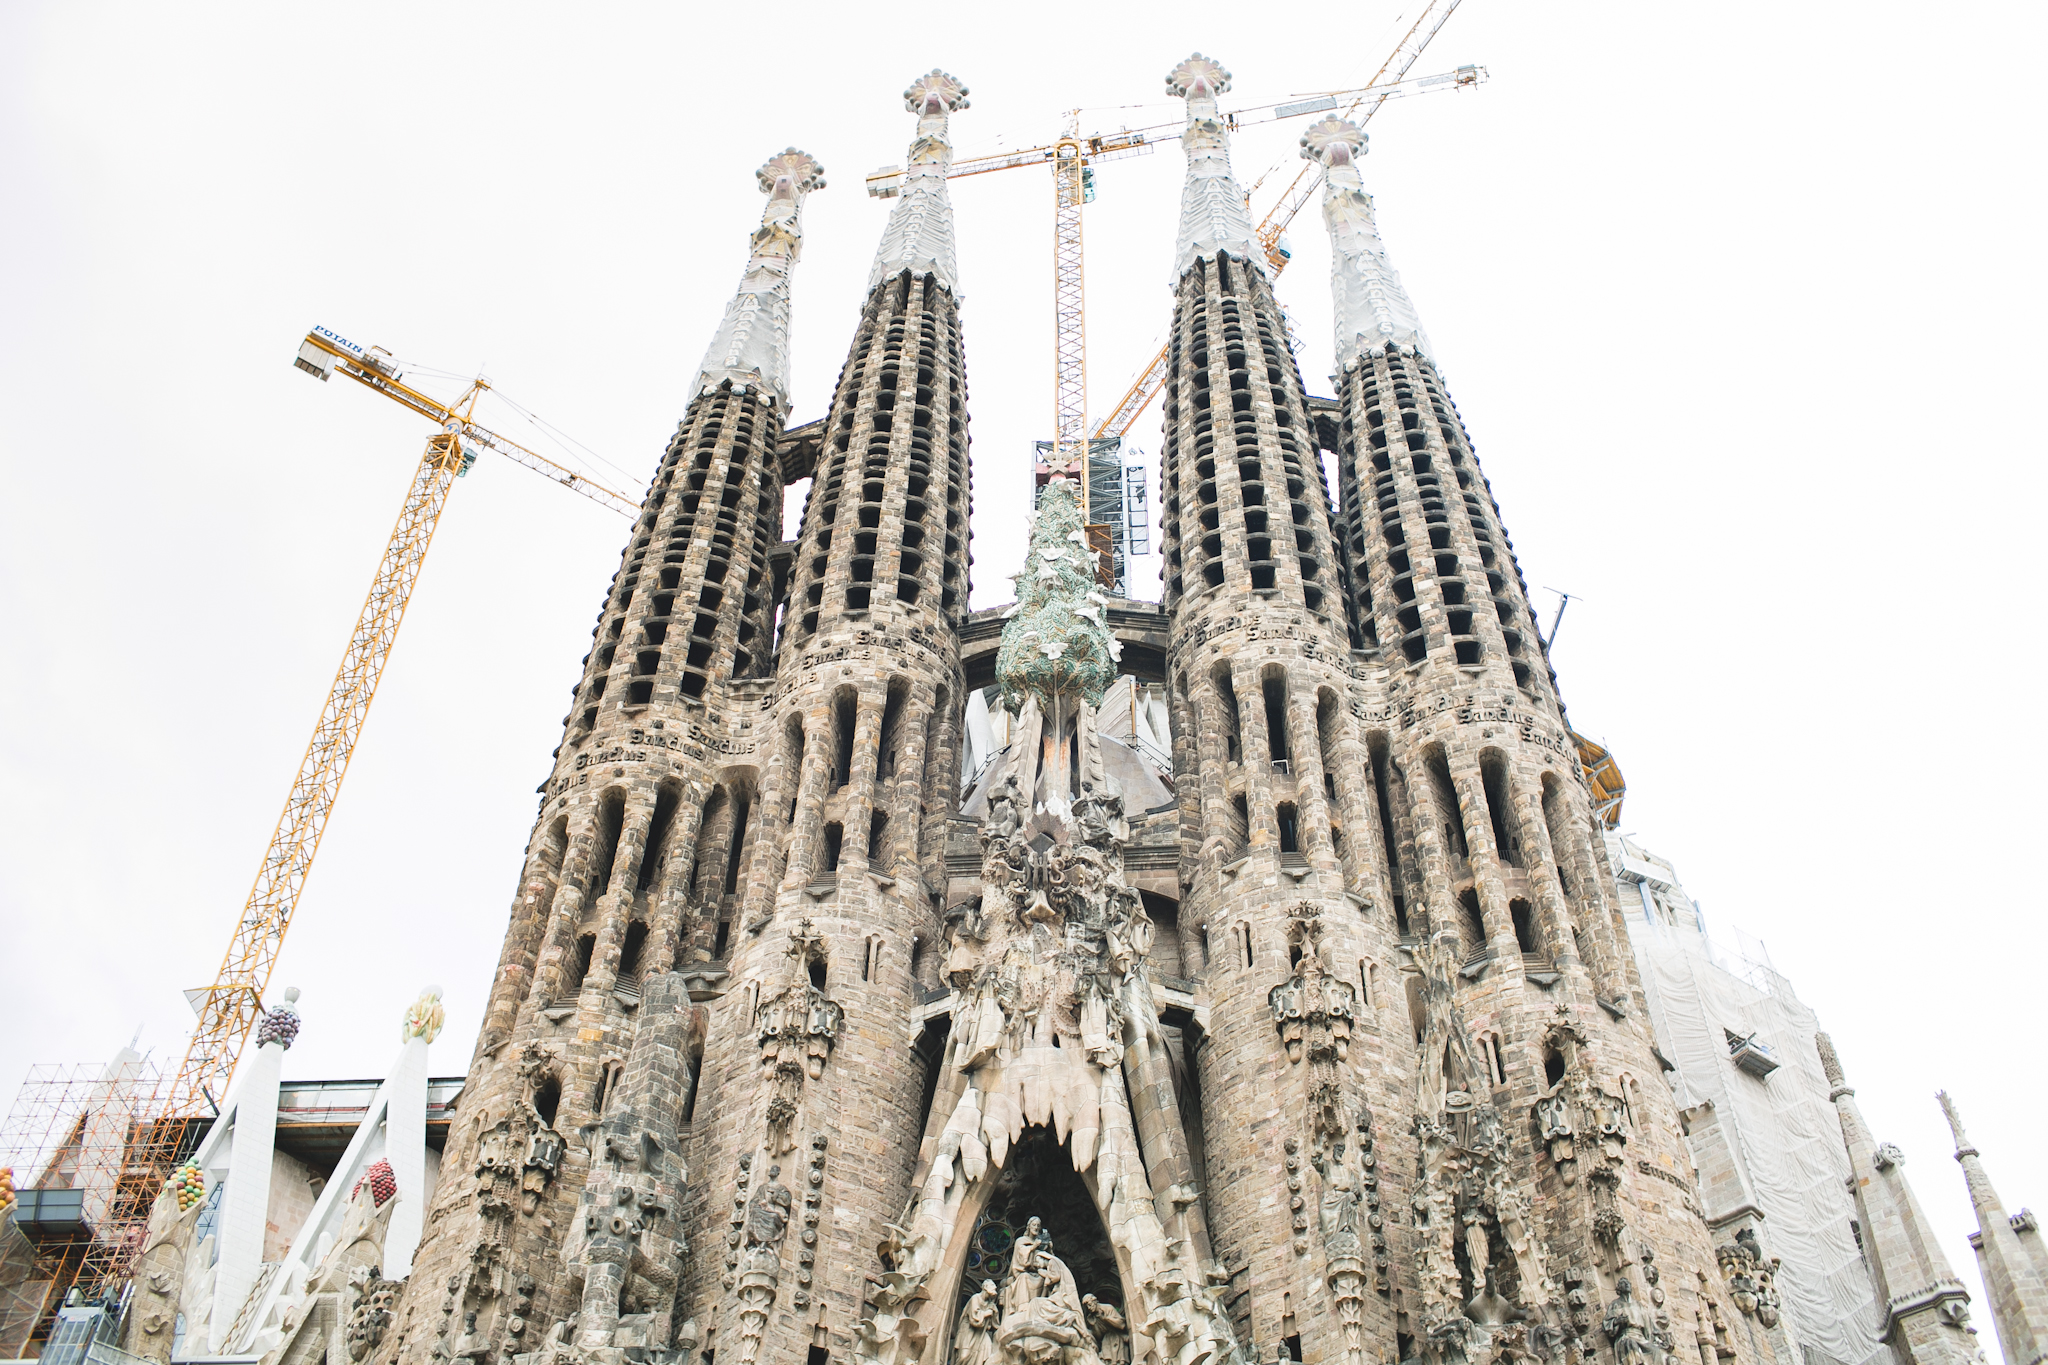 Can you believe it? So majestic. It's completed height is said to be 560ft tall.